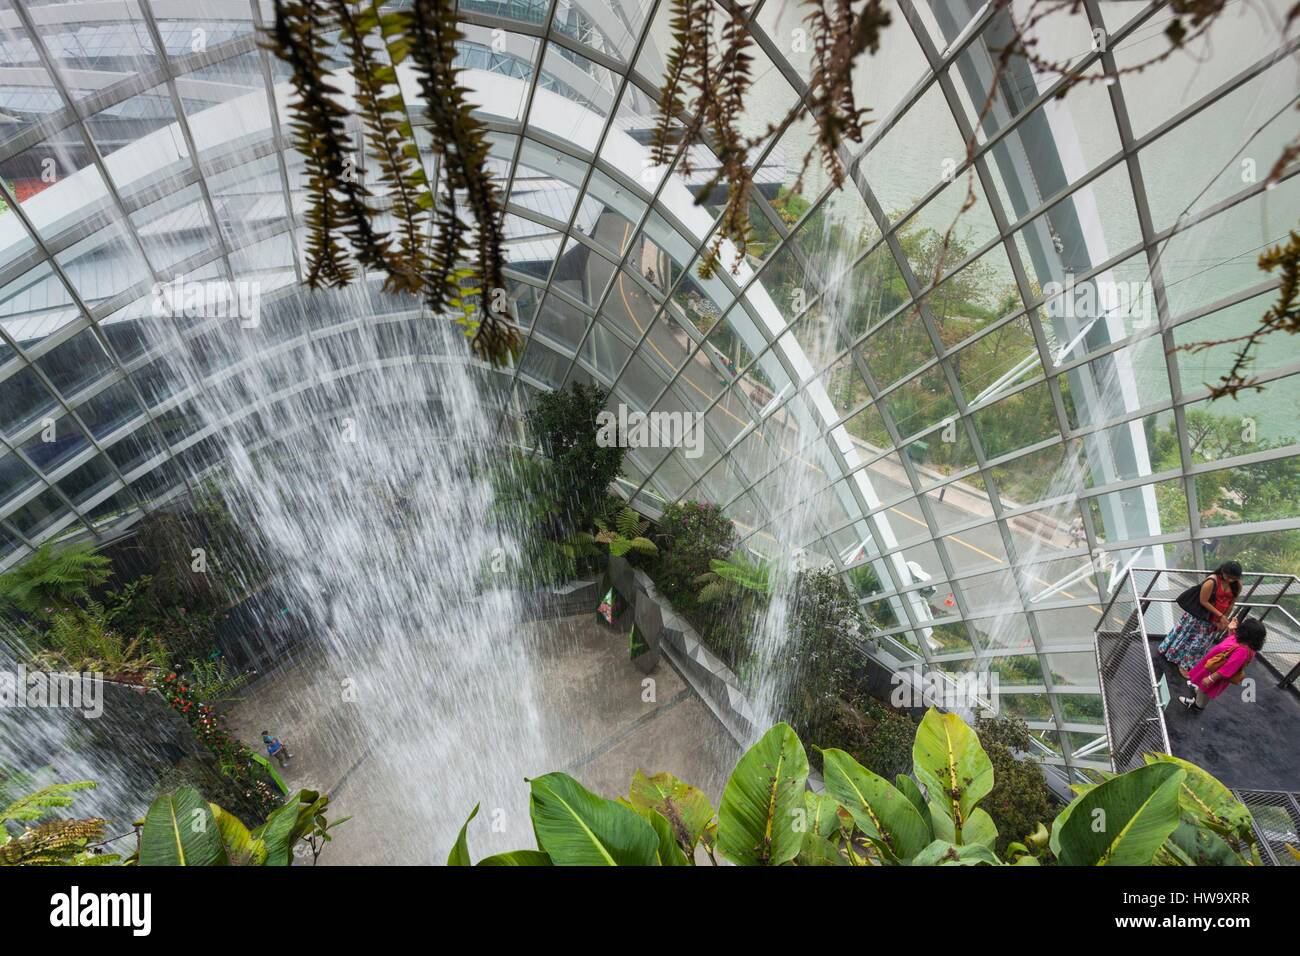 Singapore, Gardens By The Bay, Cloud Forest Indoor Botanical Garden,  Waterfall